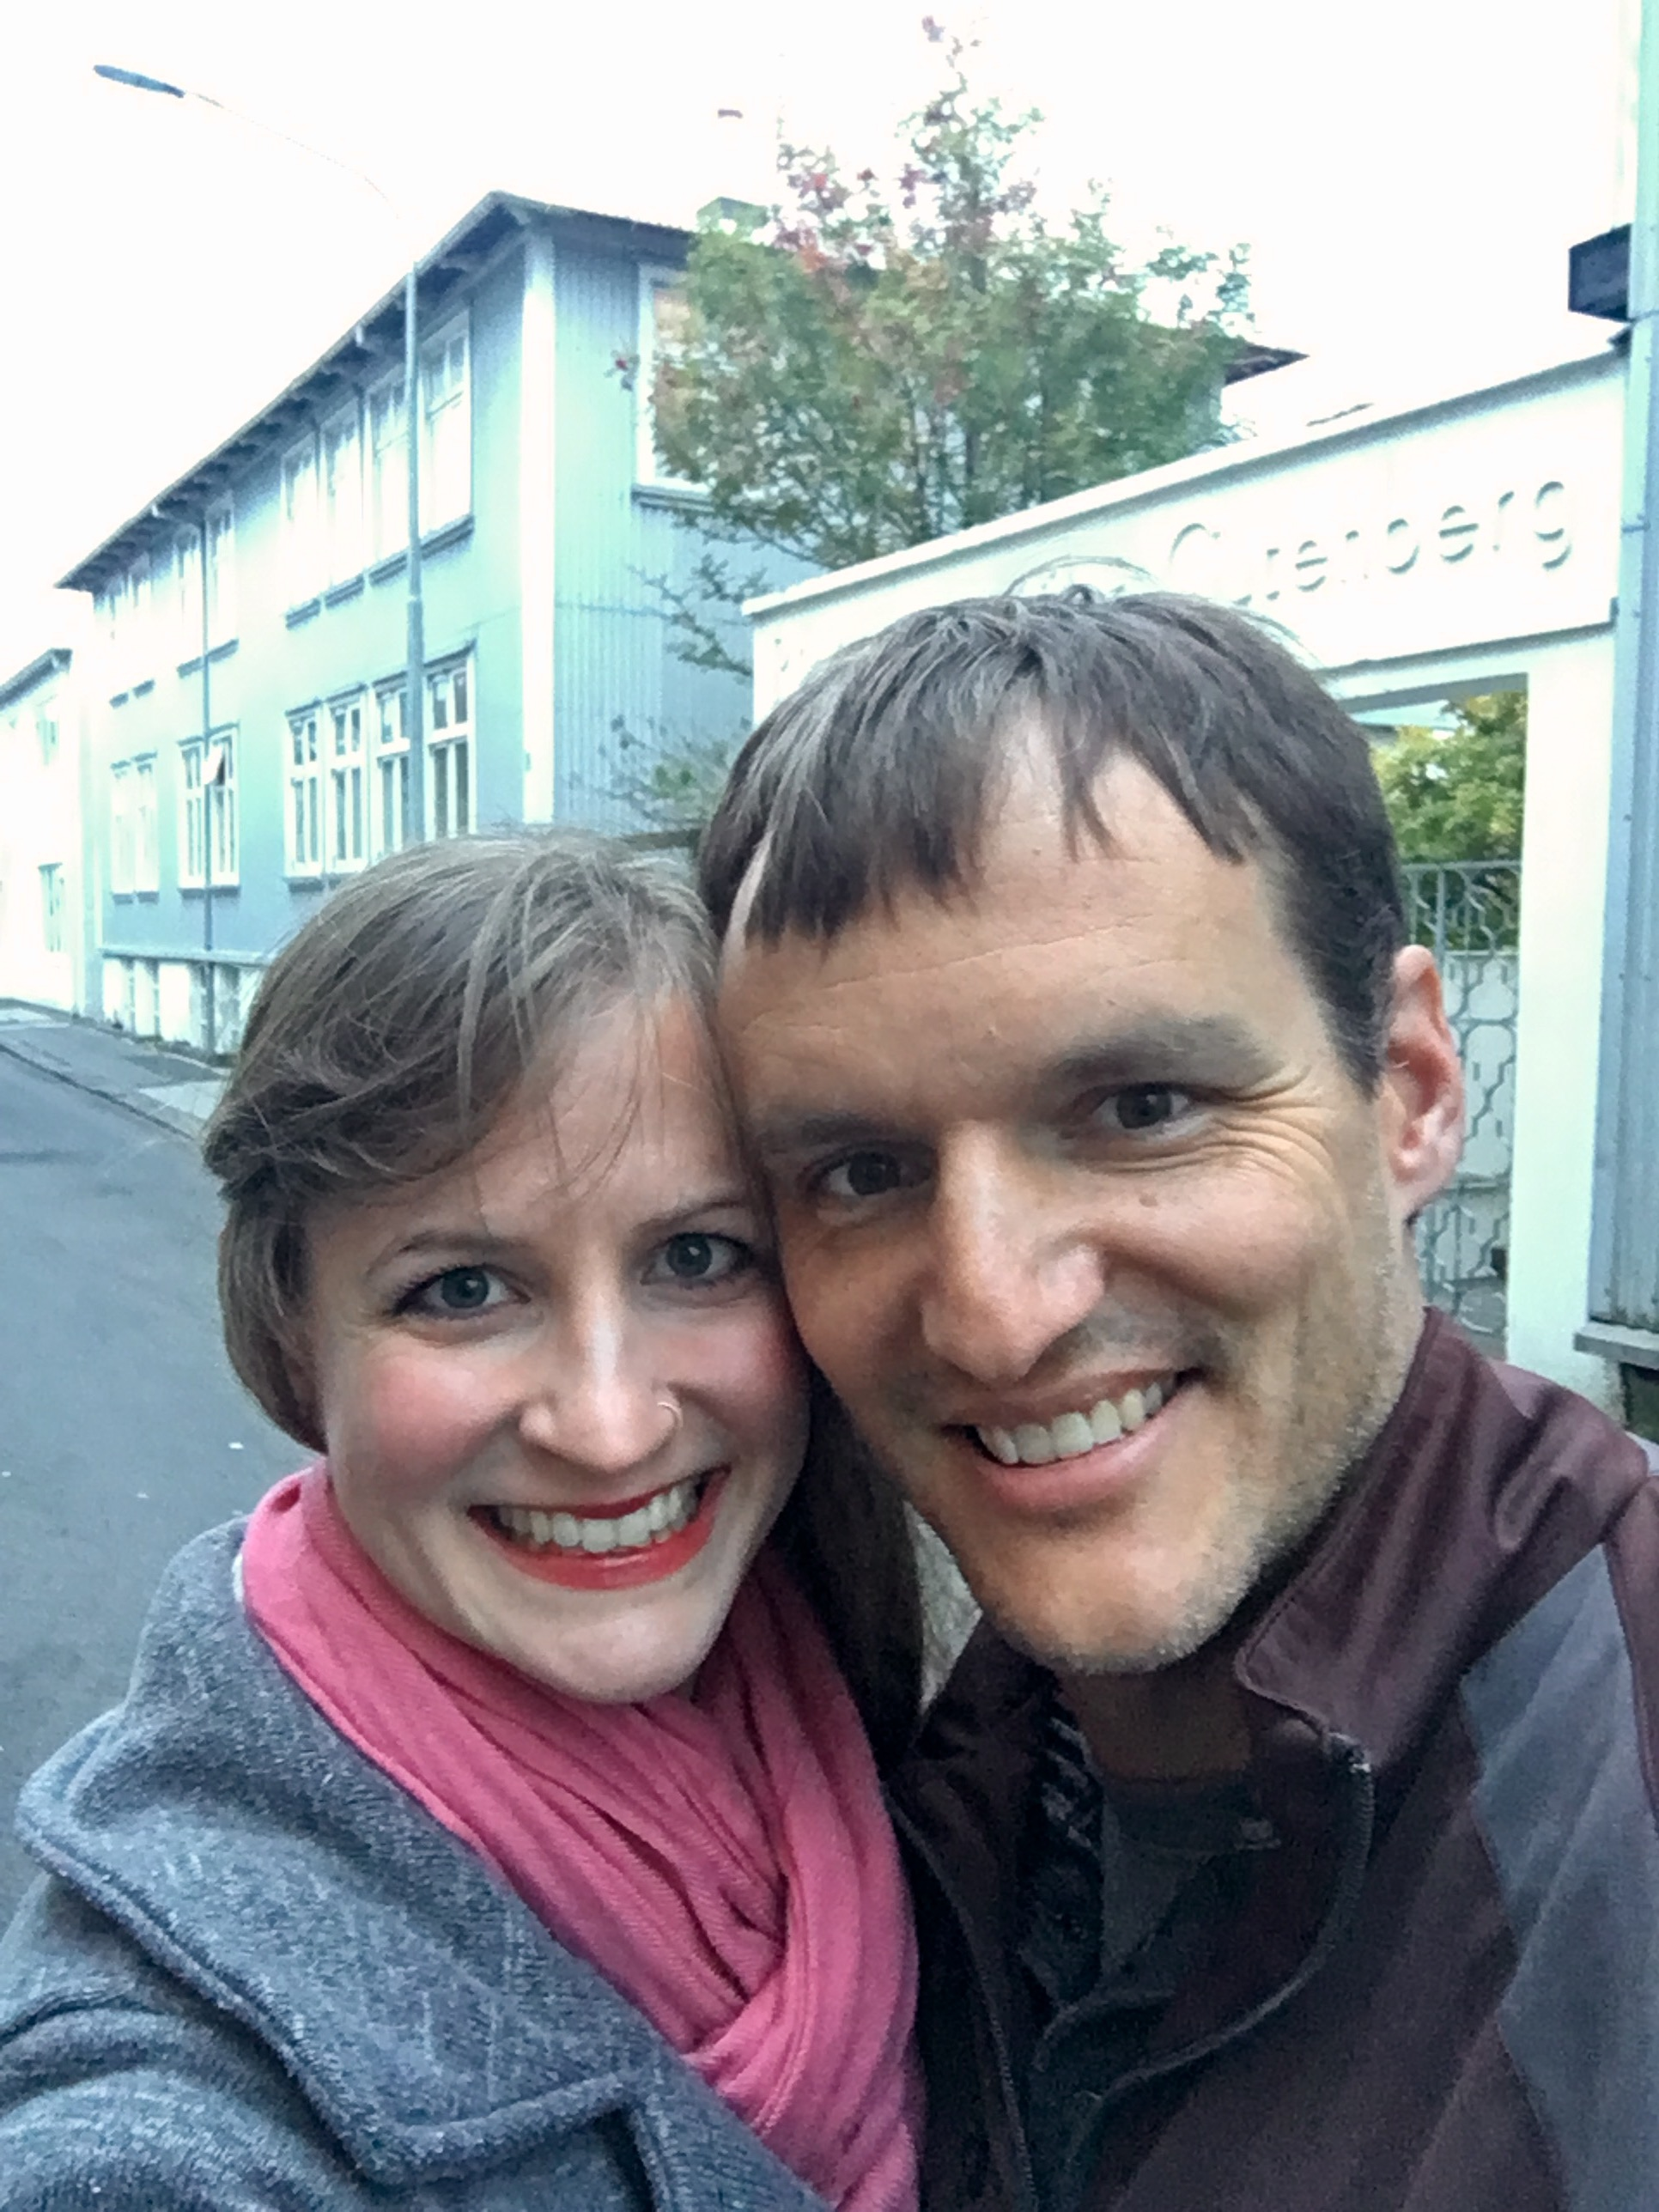 Date night in Reykjavic, Iceland, 2017